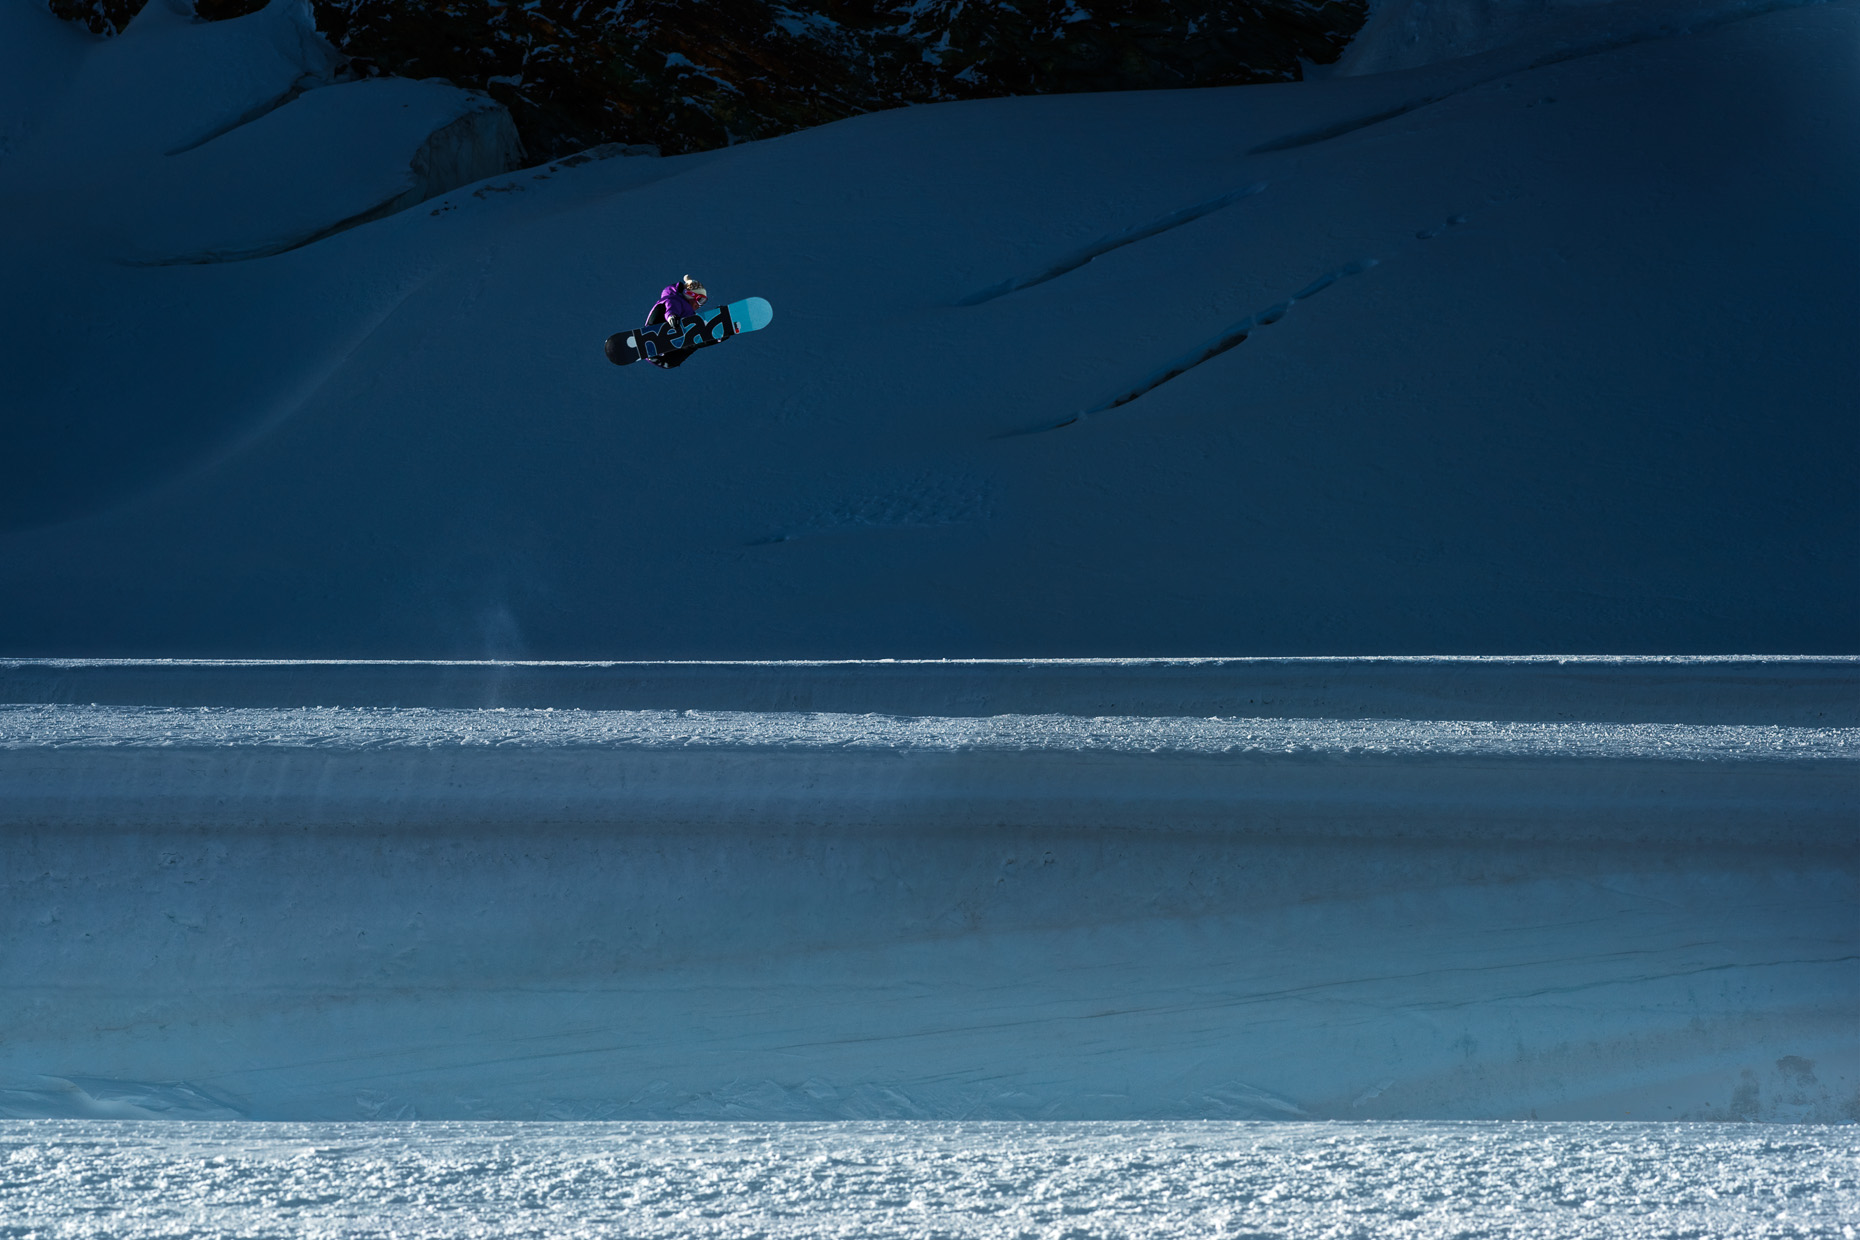 snowboarding_Christophe_Schmidt_Saas_Fee_Nov_2009-FINAL.jpg